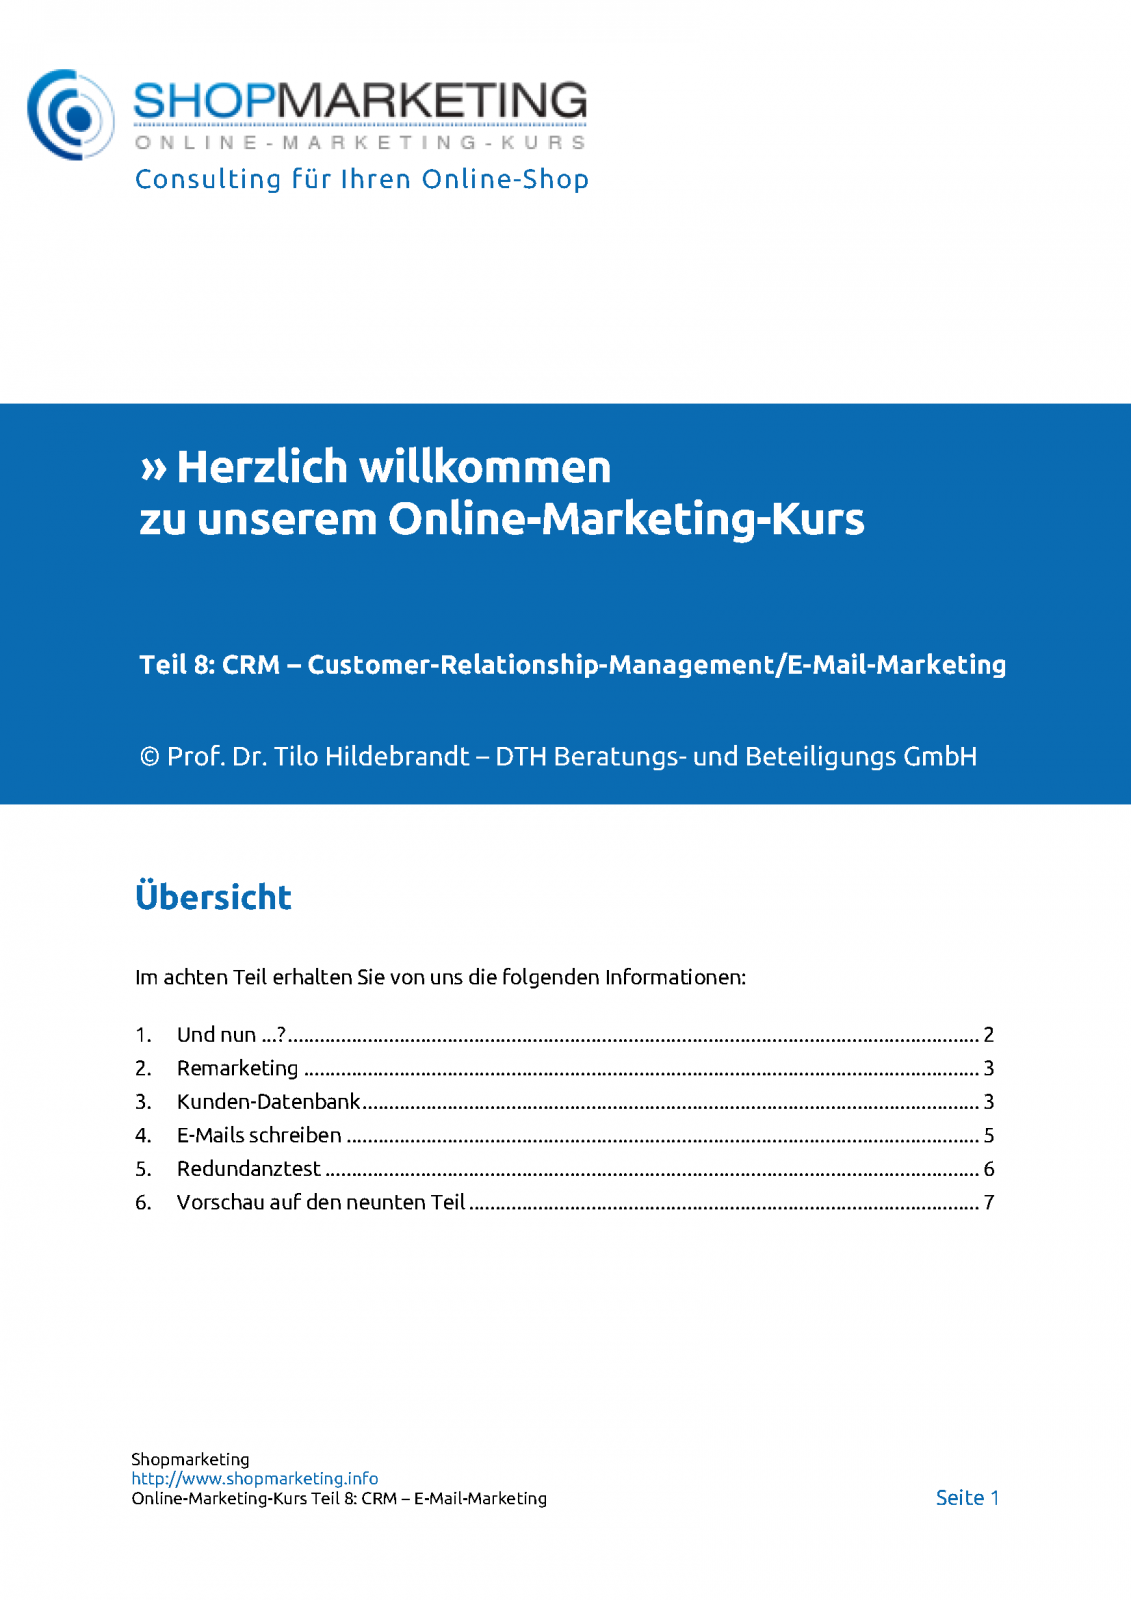 Teil 8: CRM/E-Mail-Marketing